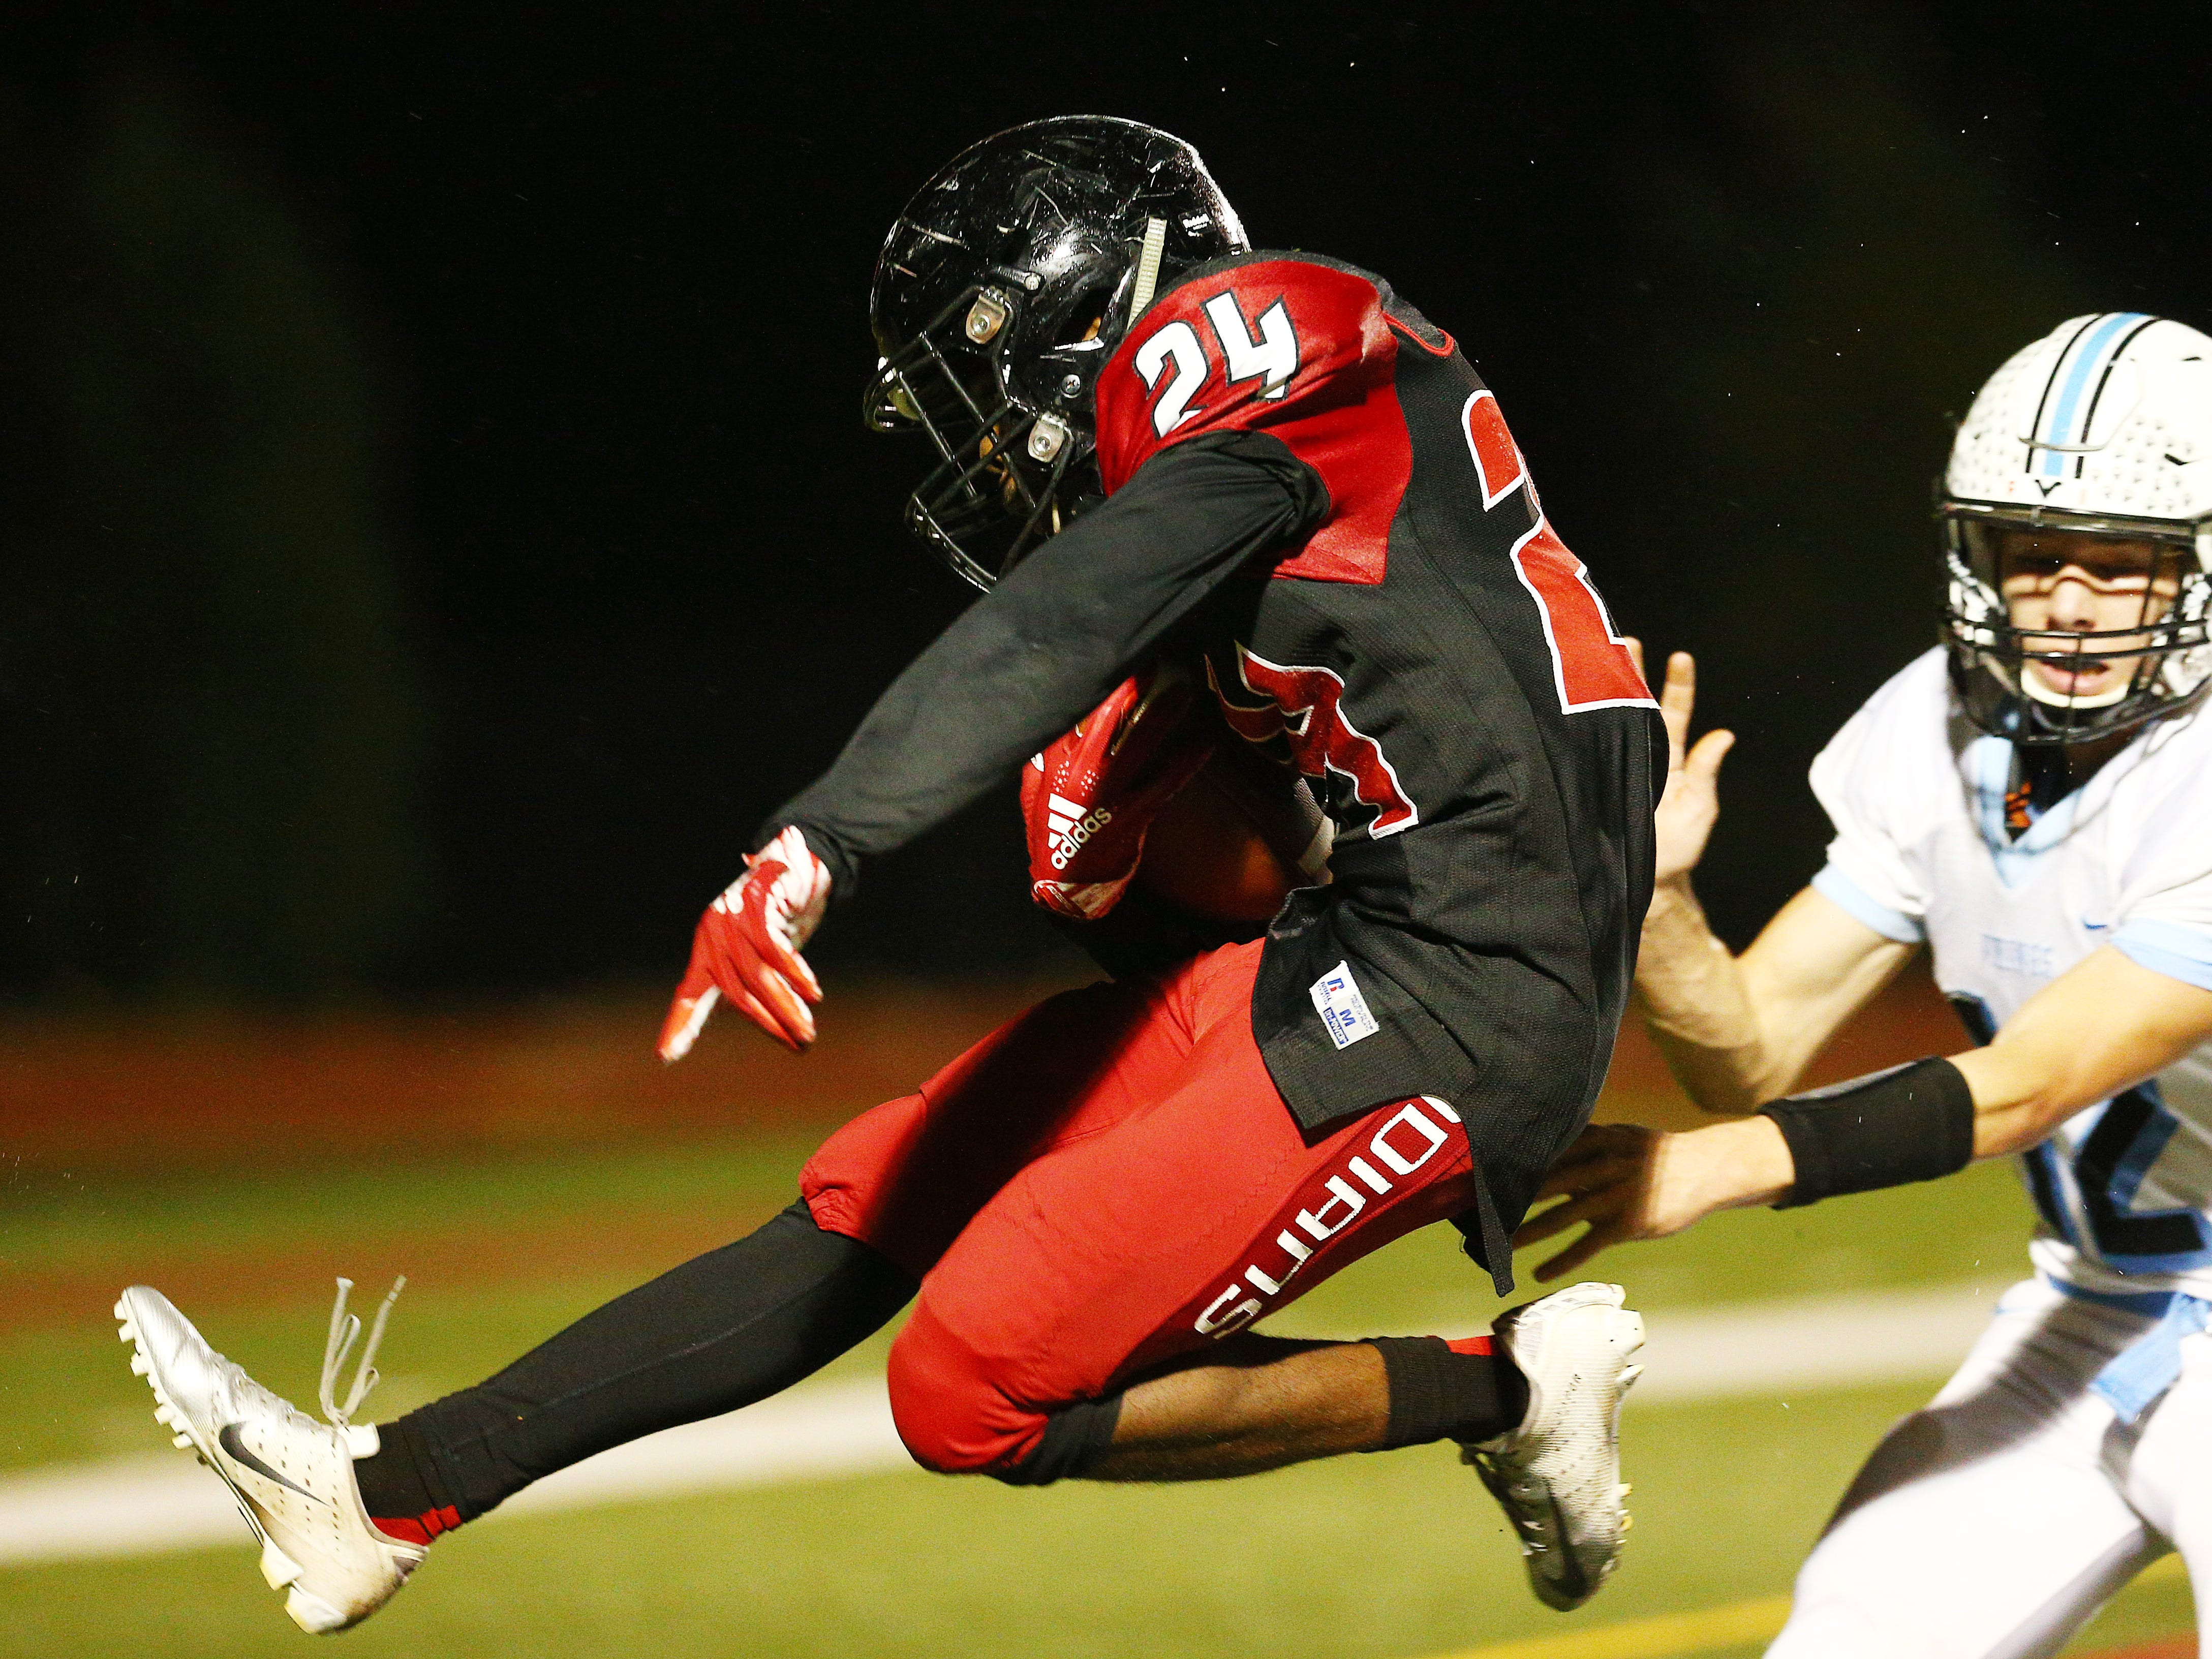 Rahway's Zi'on Pendleton hurdles into the end zone for a second half touchdown vs. Parsippany Hills during their NJSIAA North 2 Group III football quarterfinal at Rahway River Park. November 2, 2018, Rahway, NJ